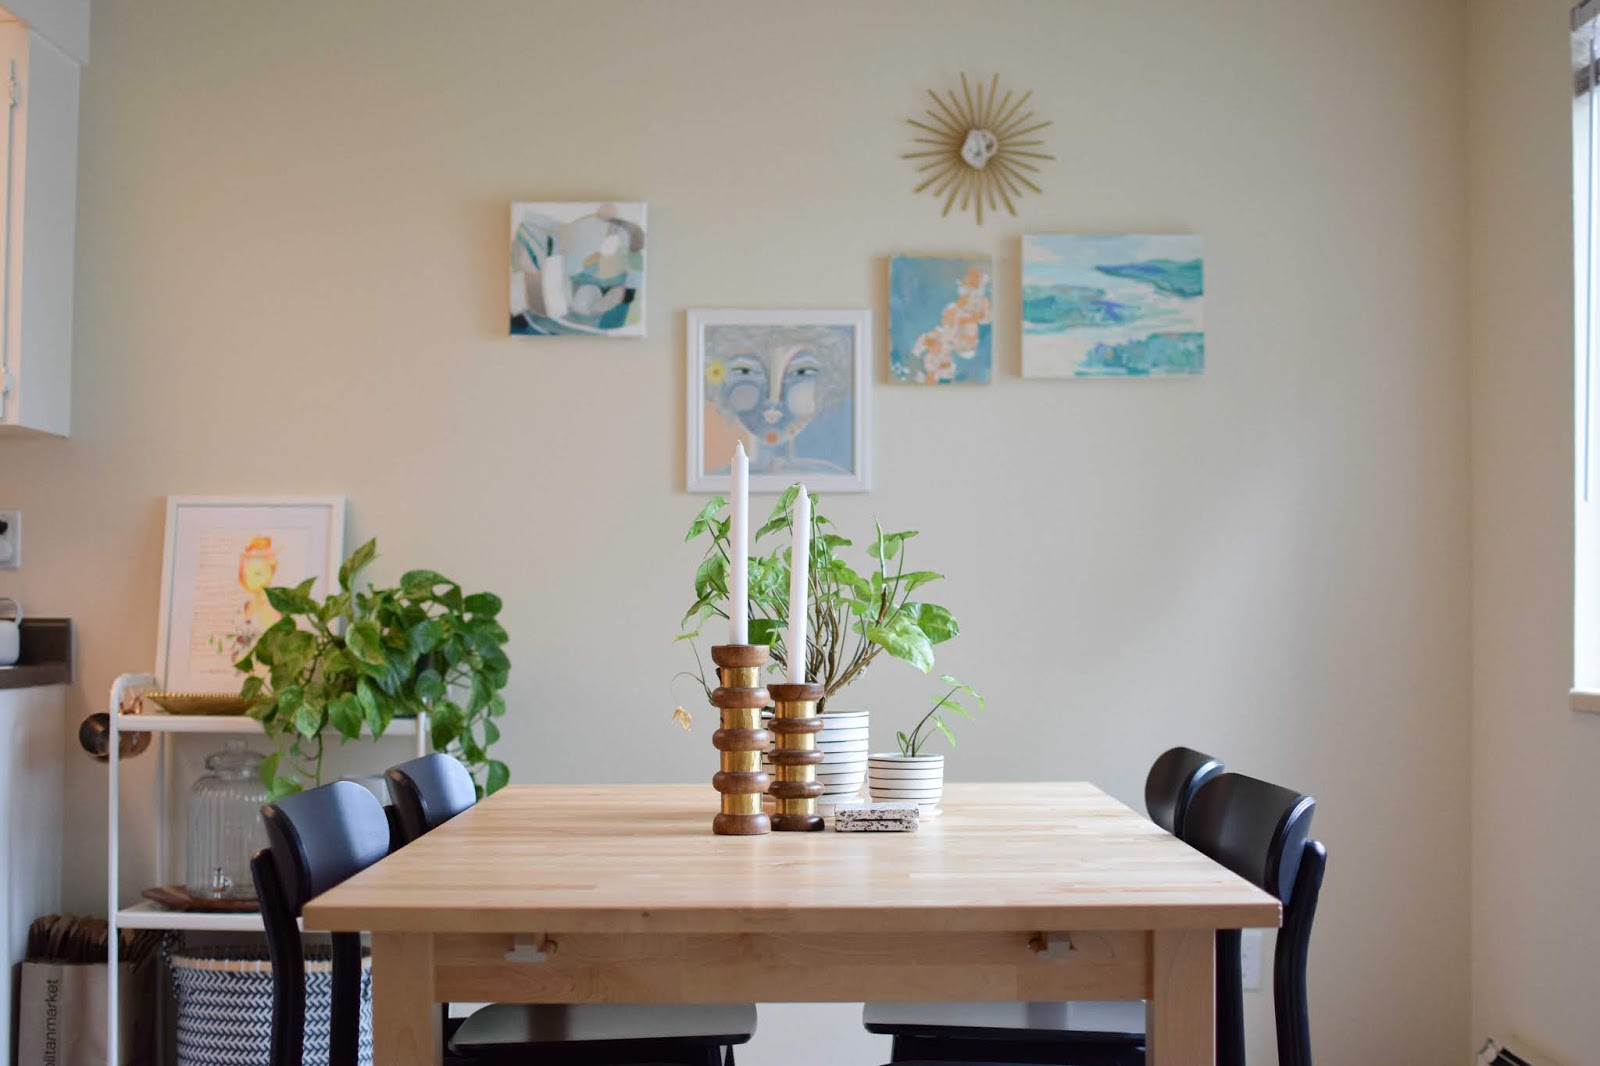 My art, plants, and home decor